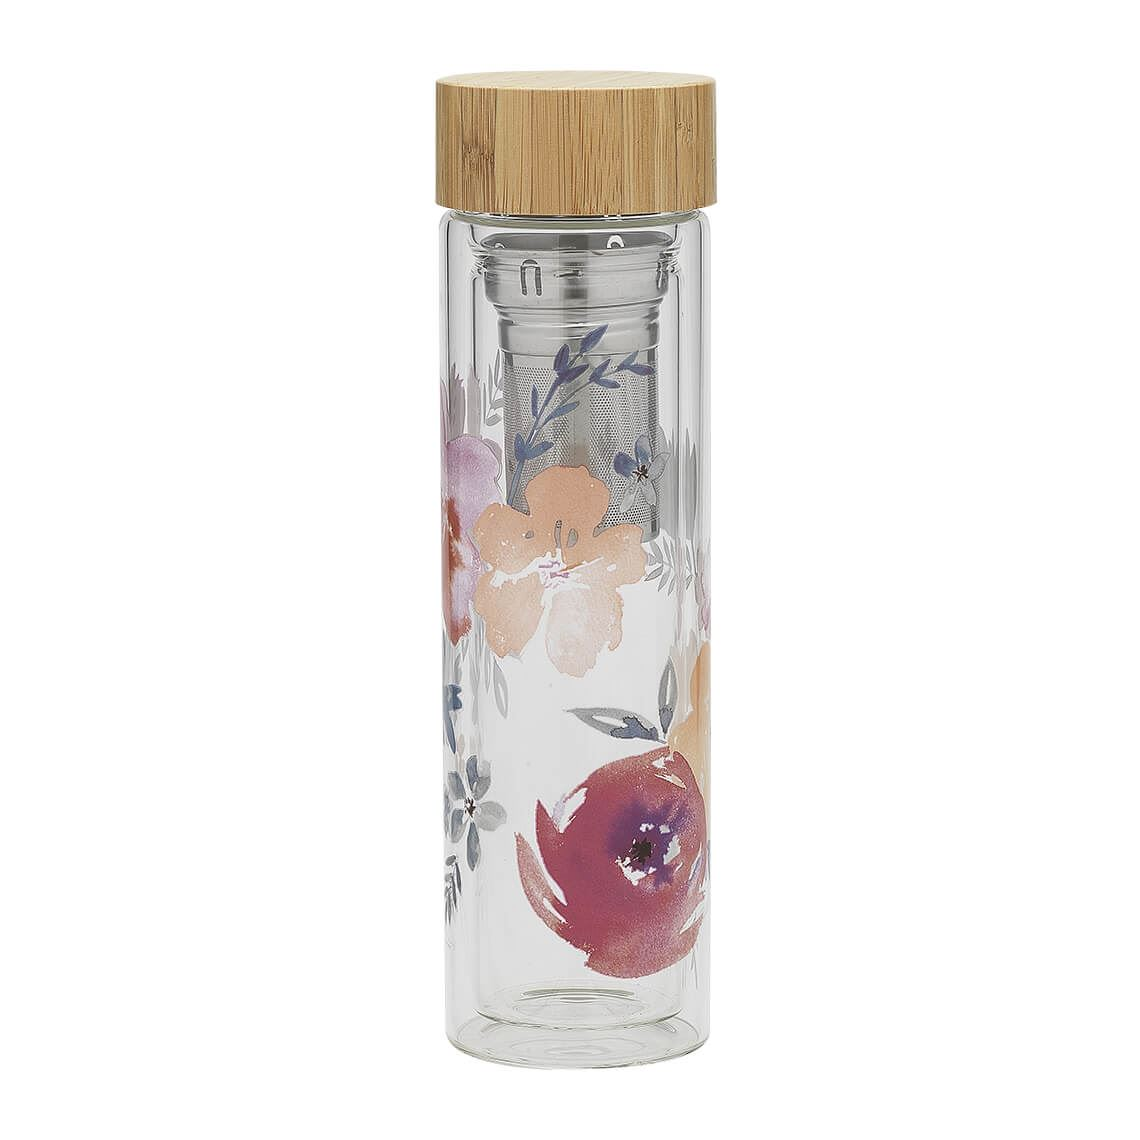 Flora L Tea Diffuser Size W 7cm x D 7cm x H 24cm in Pink Borosilicate Glass/Stainless Steel/Bamboo Lid Freedom